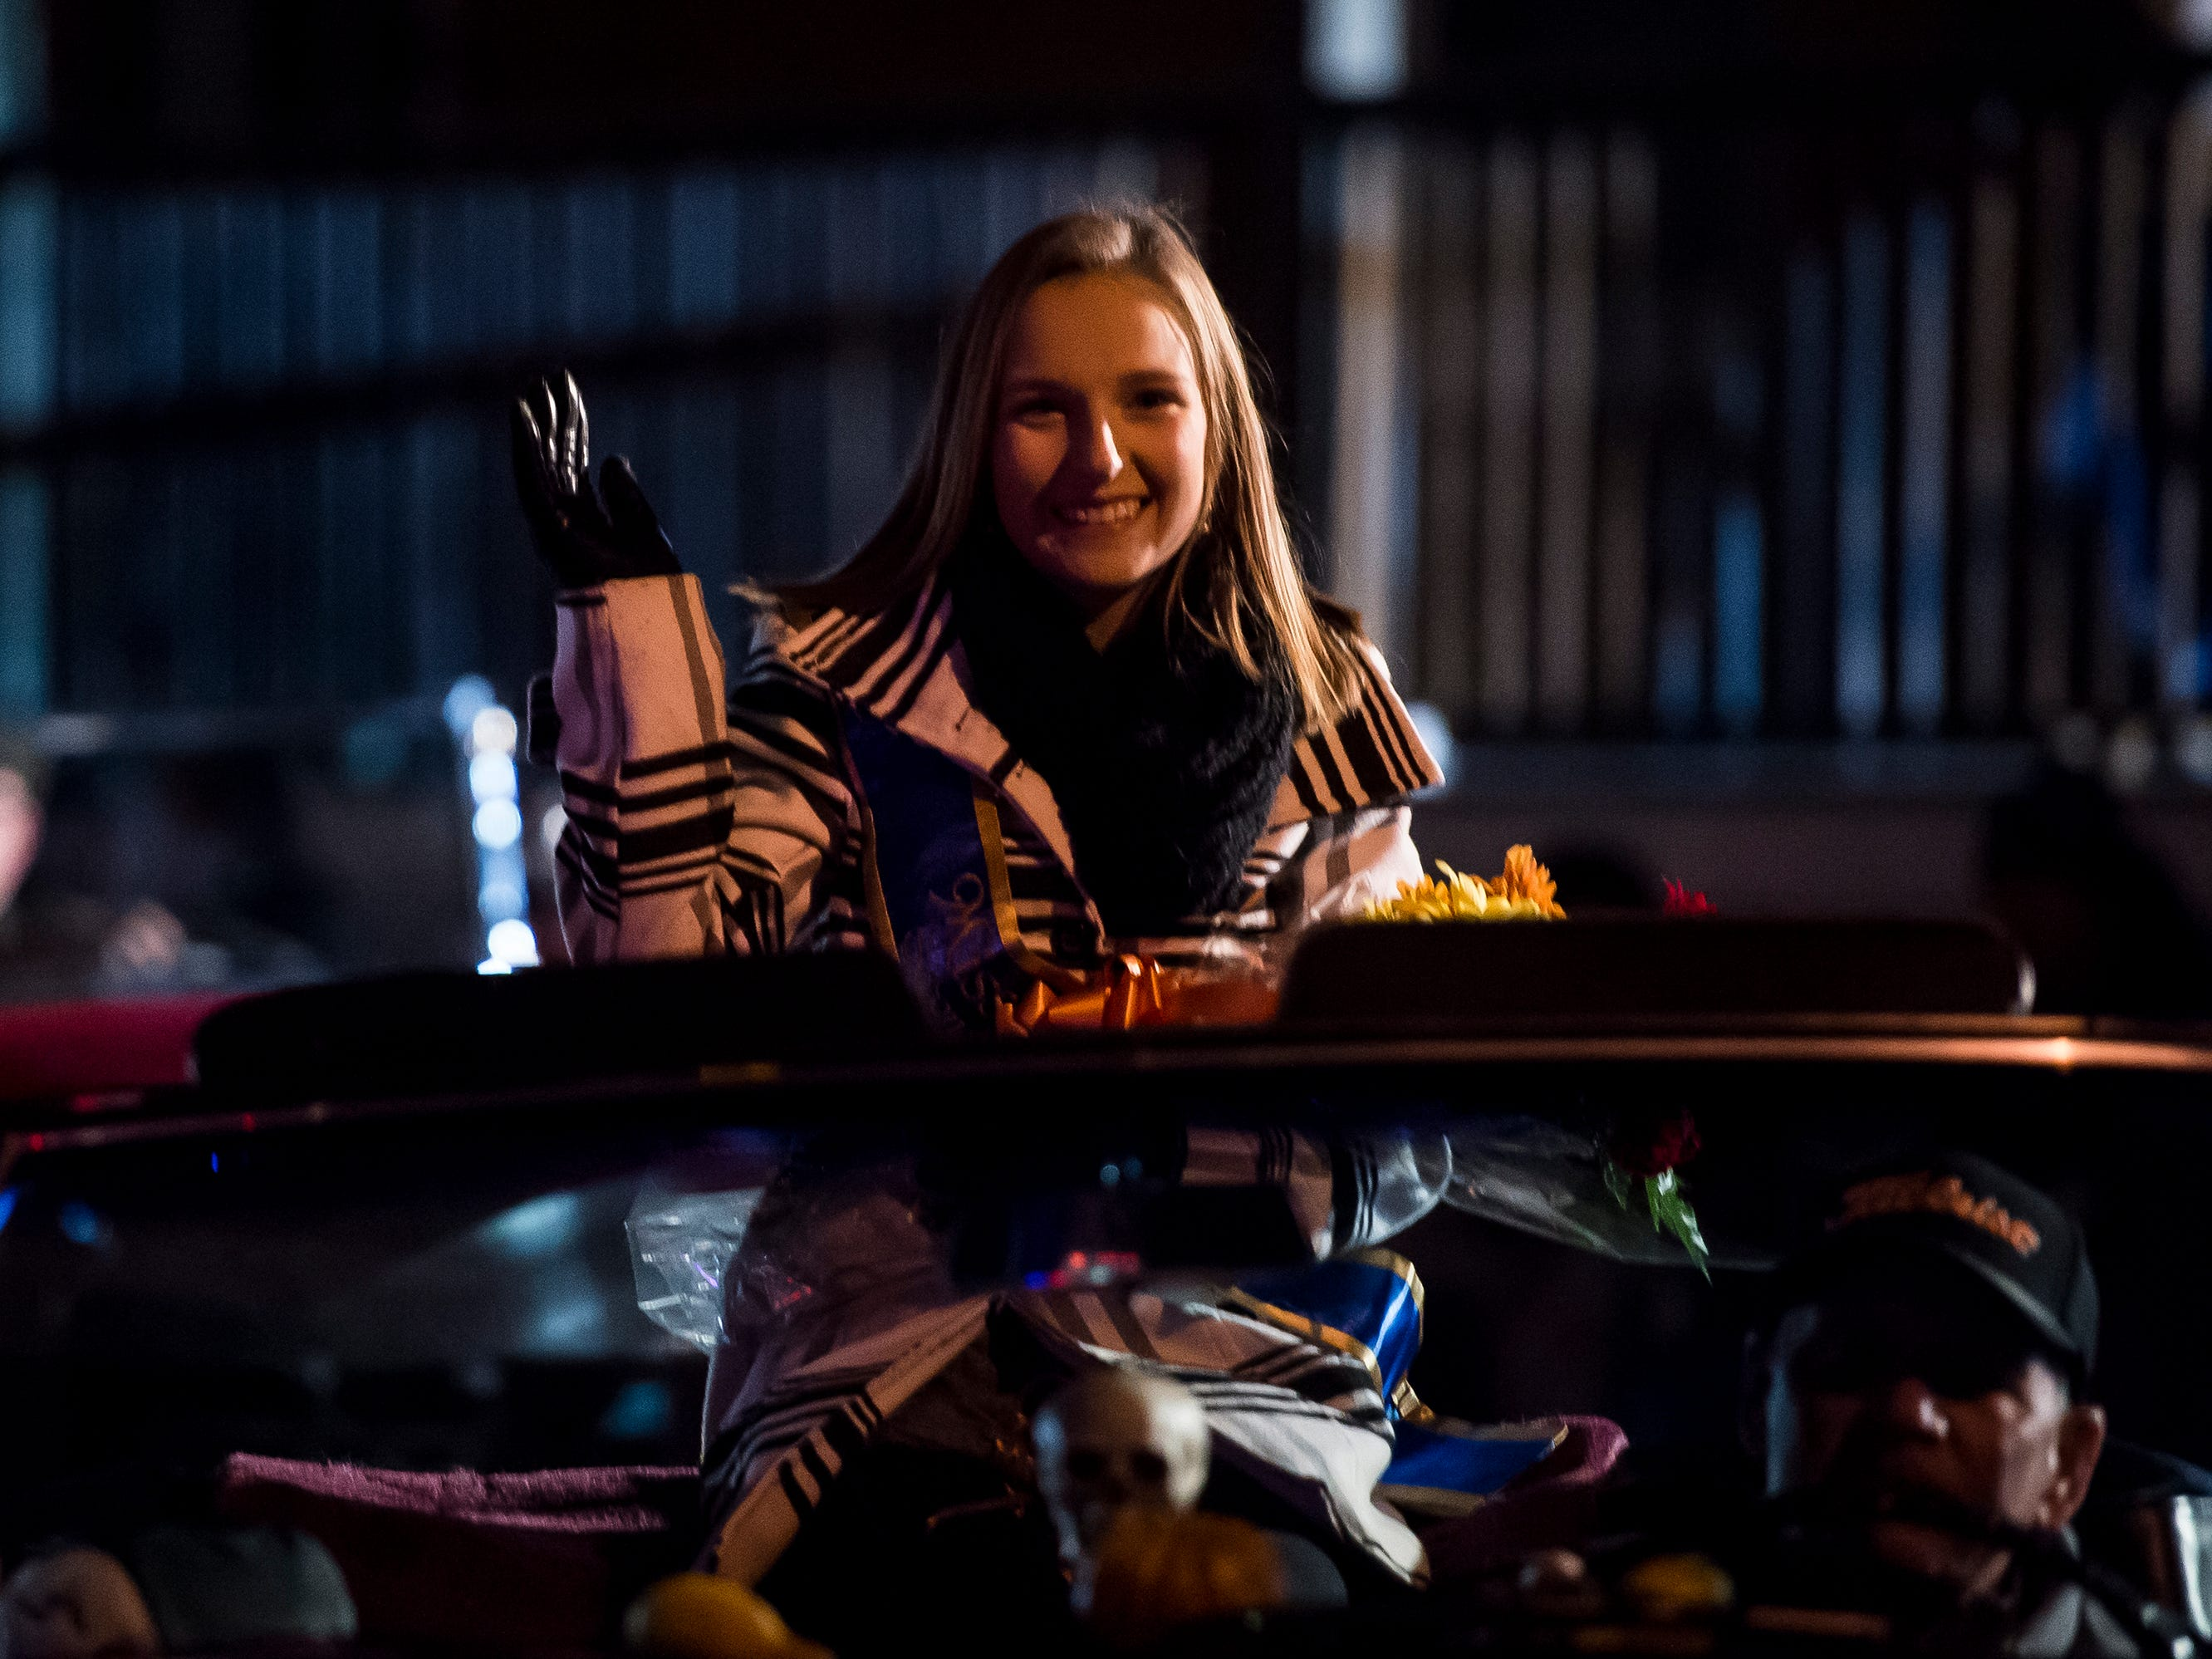 Miss Hanover Area second runner-up, Lindsay Boritz, rides in a car down Baltimore Street during the 77th annual Hanover Halloween parade on Thursday, October 25, 2018.